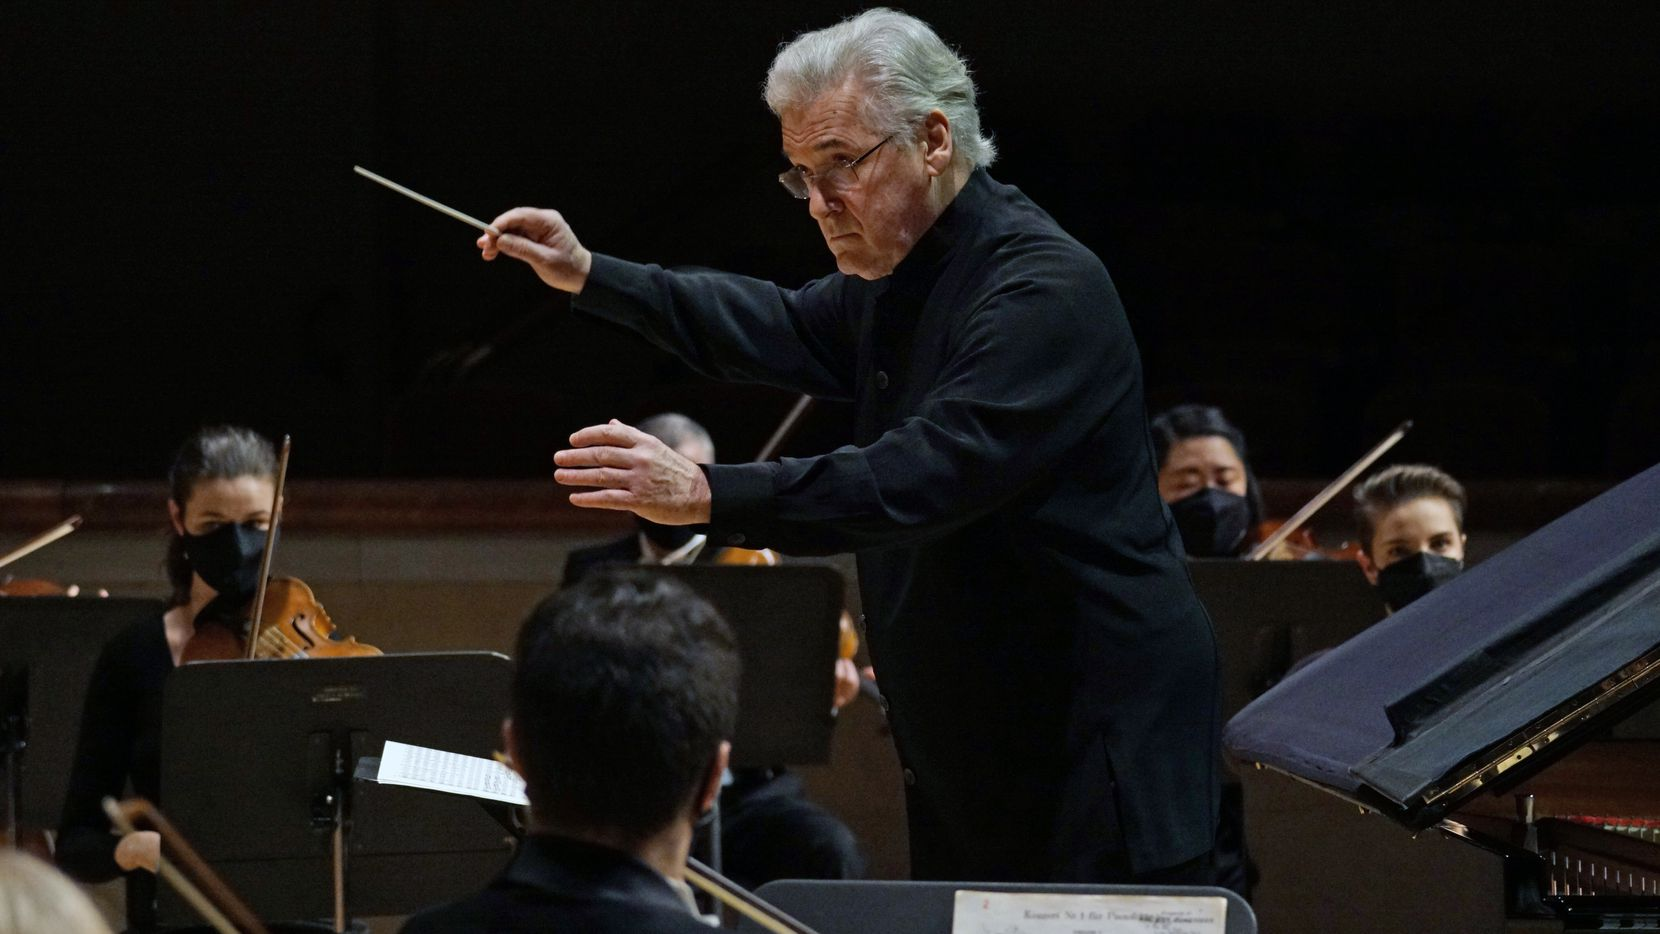 Guest Conductor Pinchas Zukerman leads the Dallas Symphony Orchestra at the Meyerson Symphony Center in Dallas, Texas on Dec. 17, 2020.